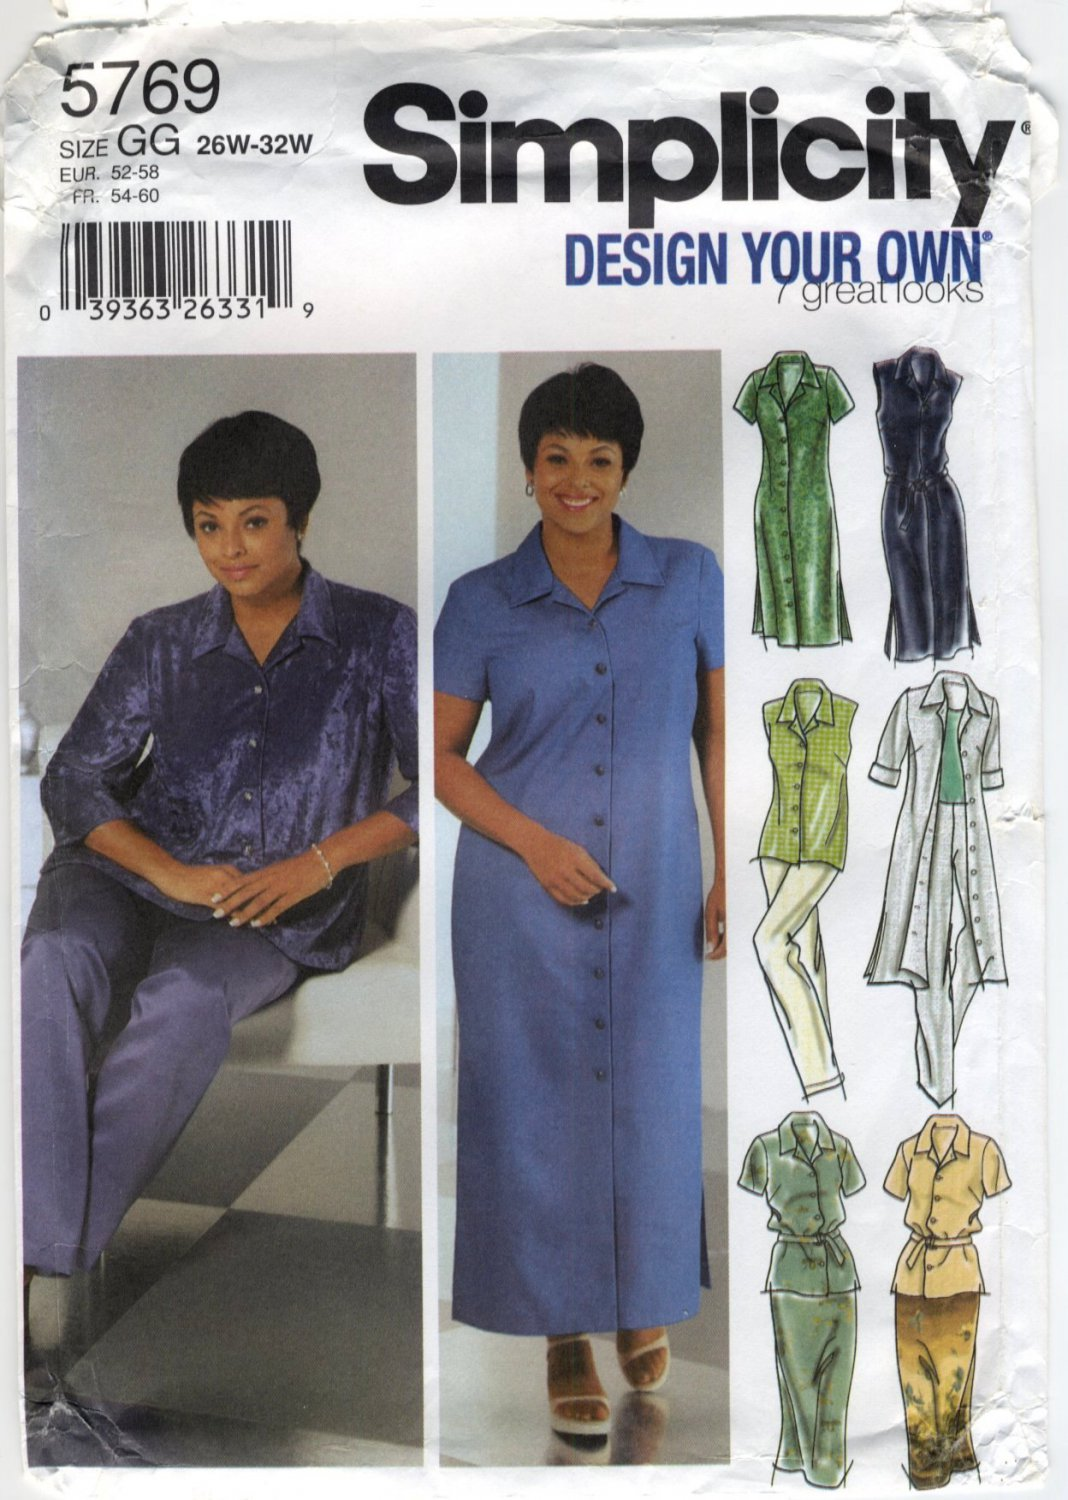 Simplicity 5769 Shirt-Dress, Shirt, Skirt & Pants - Sewing Pattern Women's 26W 28W 30W 32W